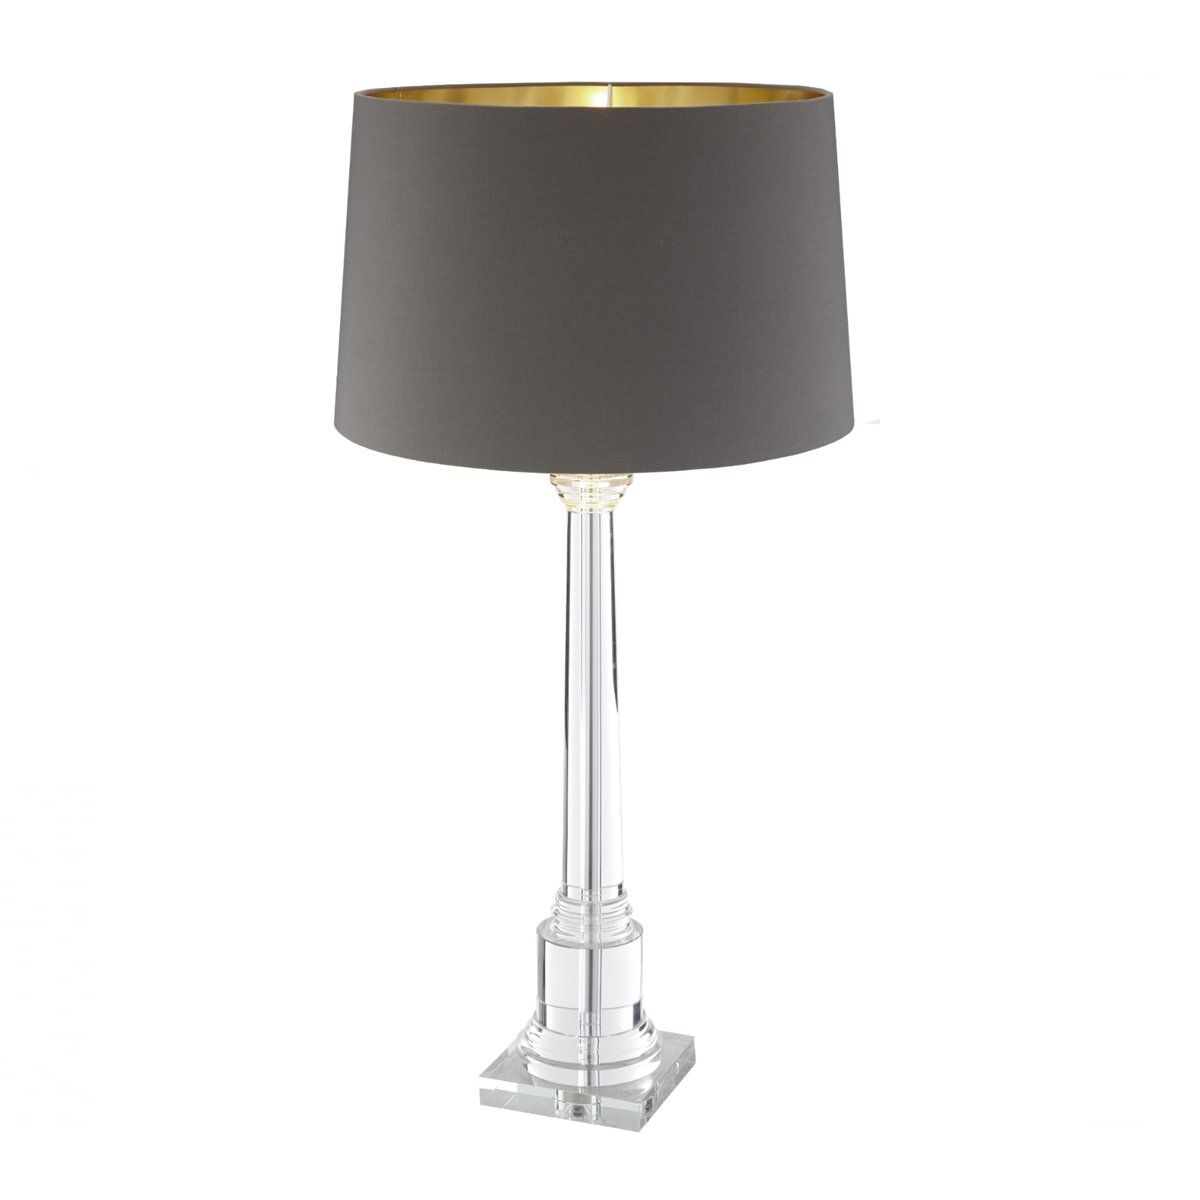 Rv Astley Aliz Table Lamp Base Only Table Lamp Base Table